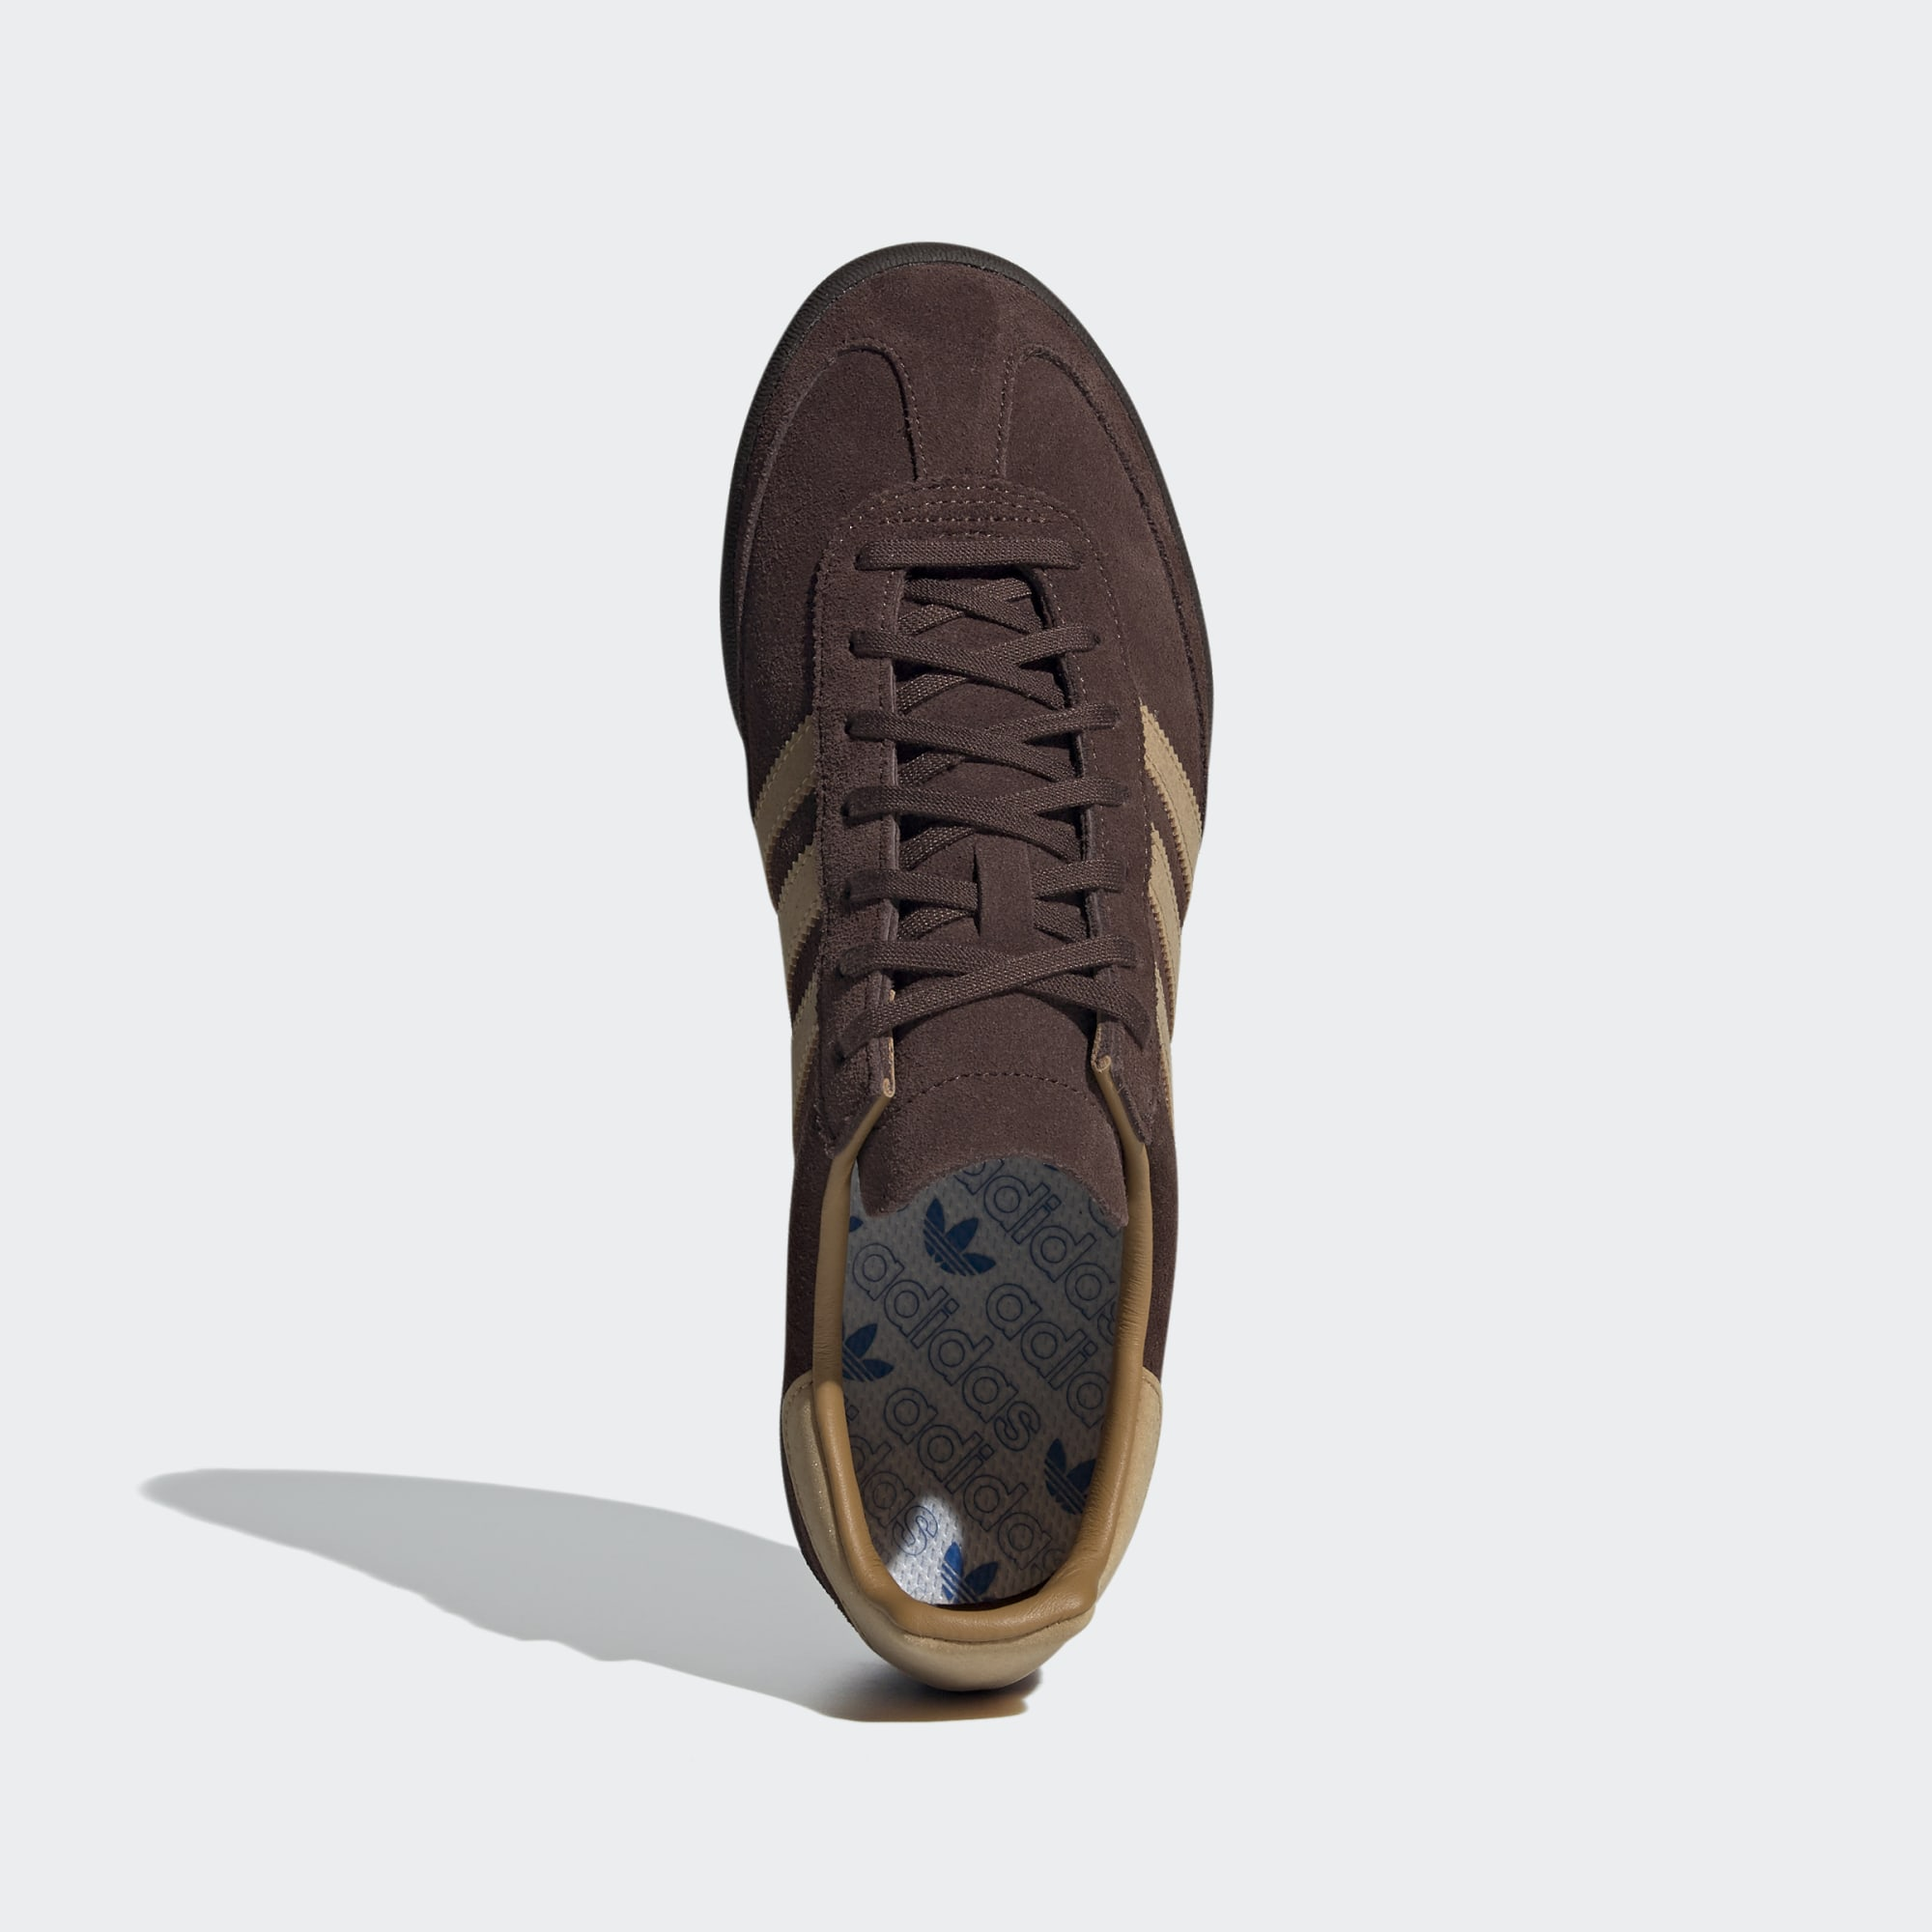 Cord_Shoes_Brun_H67630_02_standard_hover.jpg